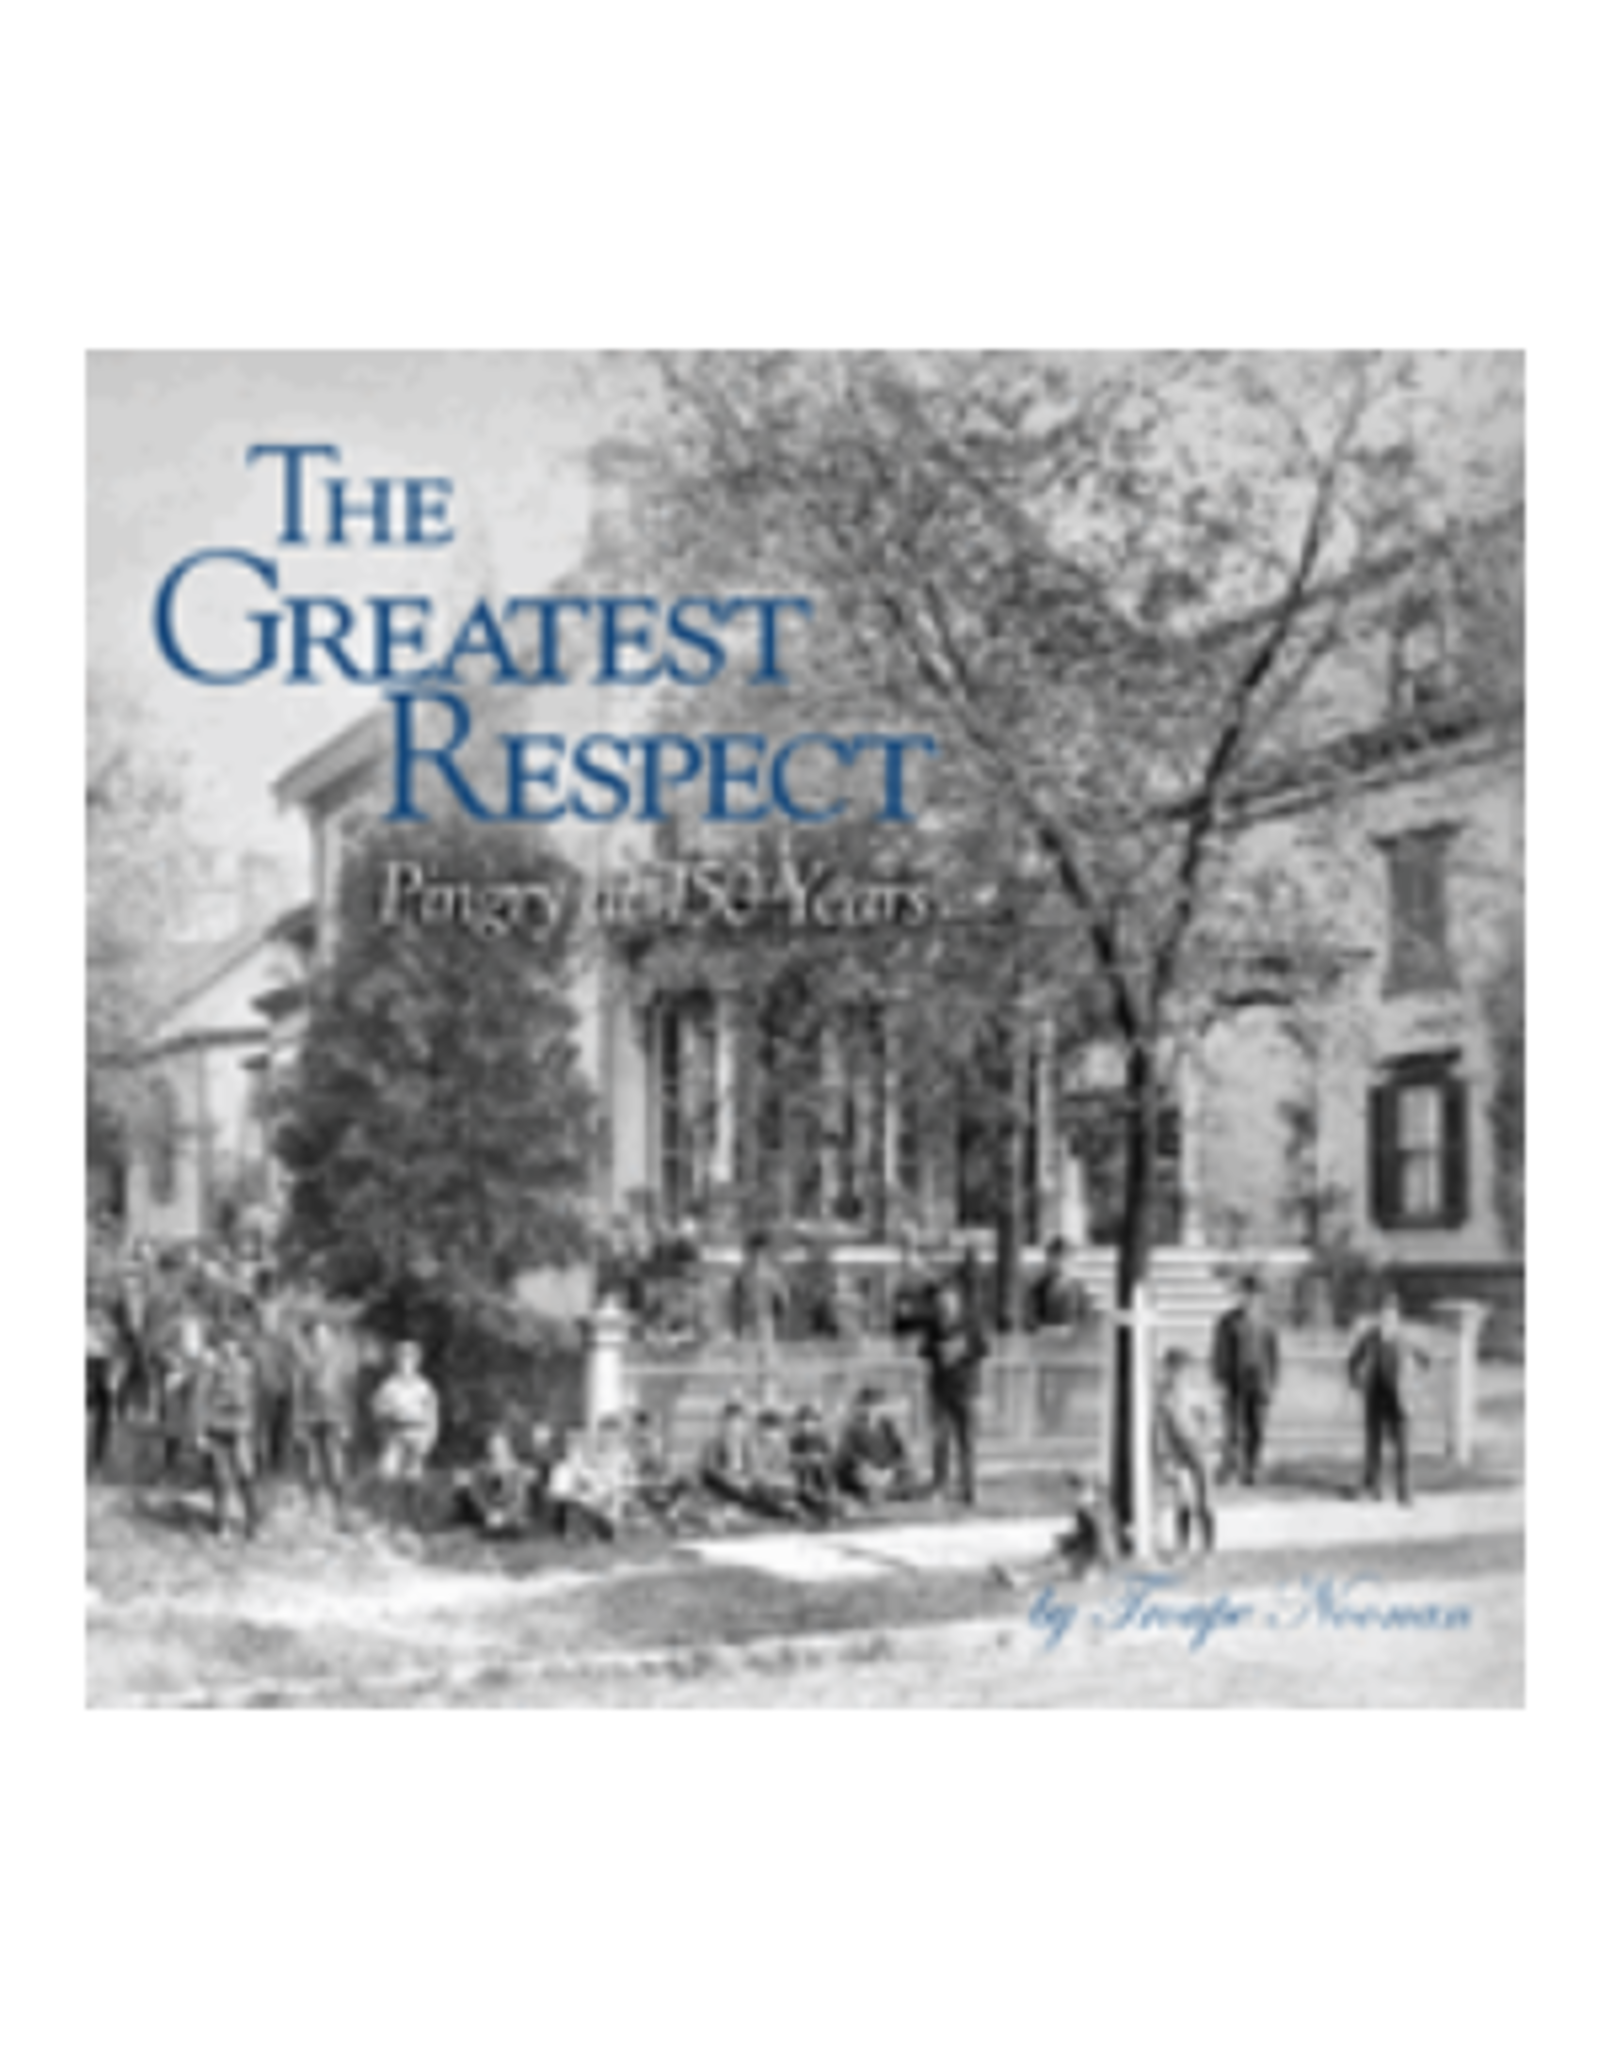 The Greatest Respect